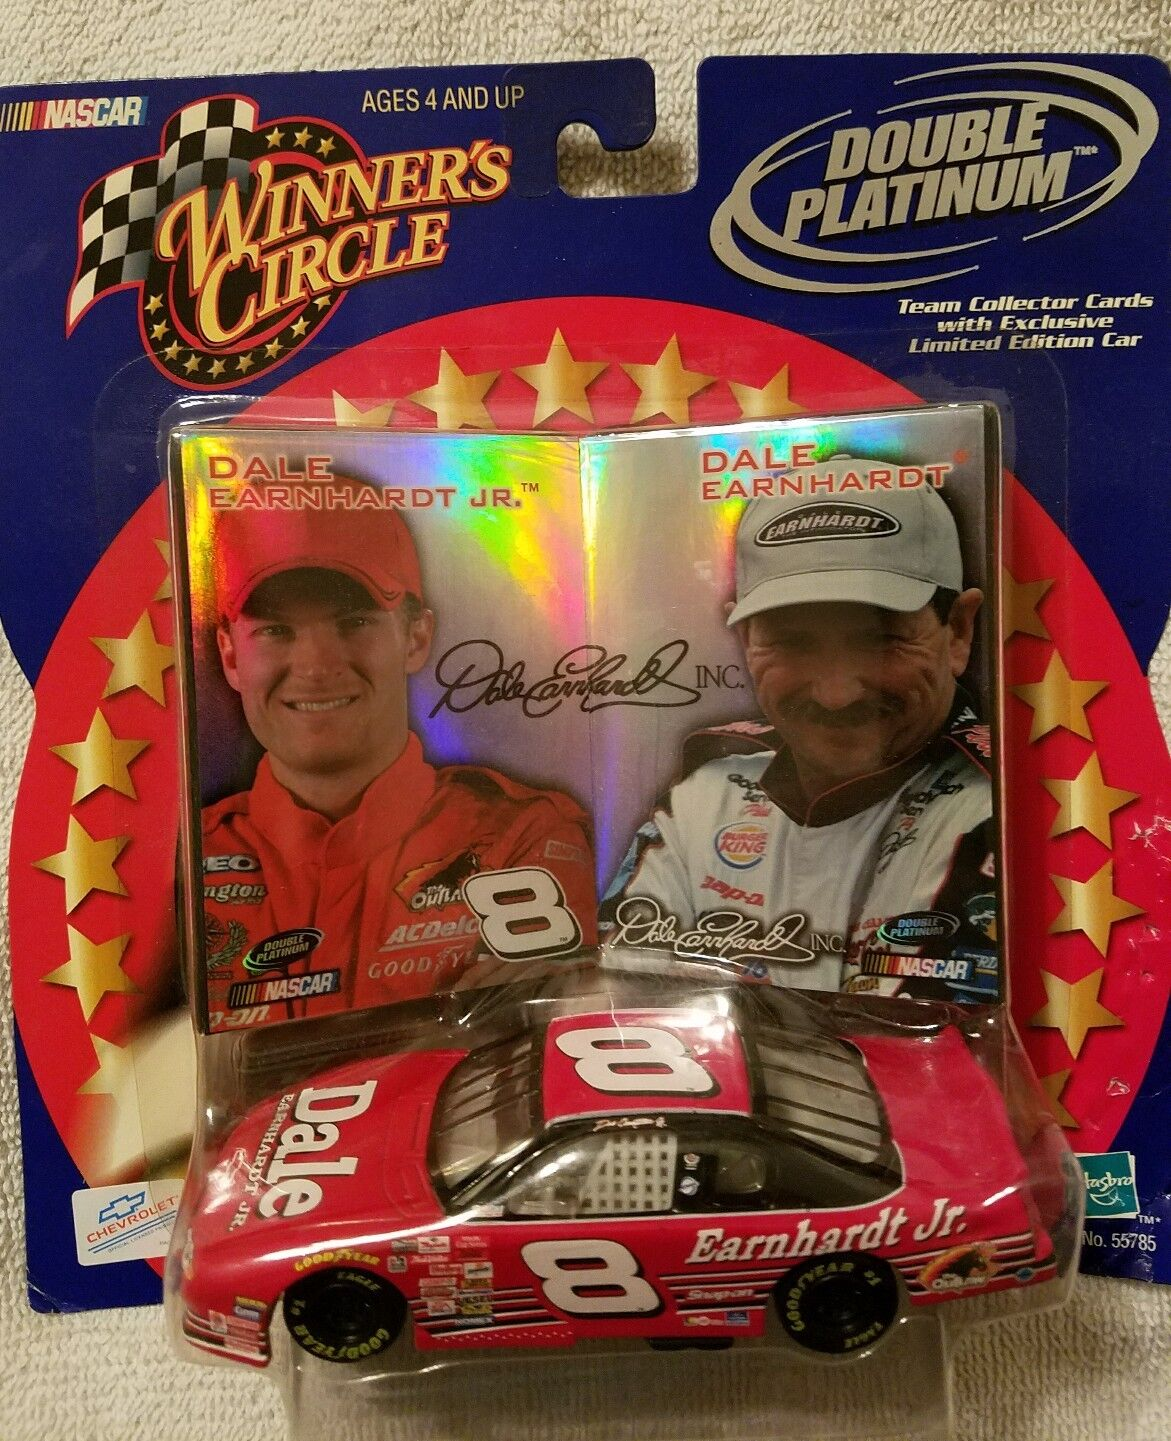 NASCAR EARNHARDT JR. Winner Circle Double Platinum